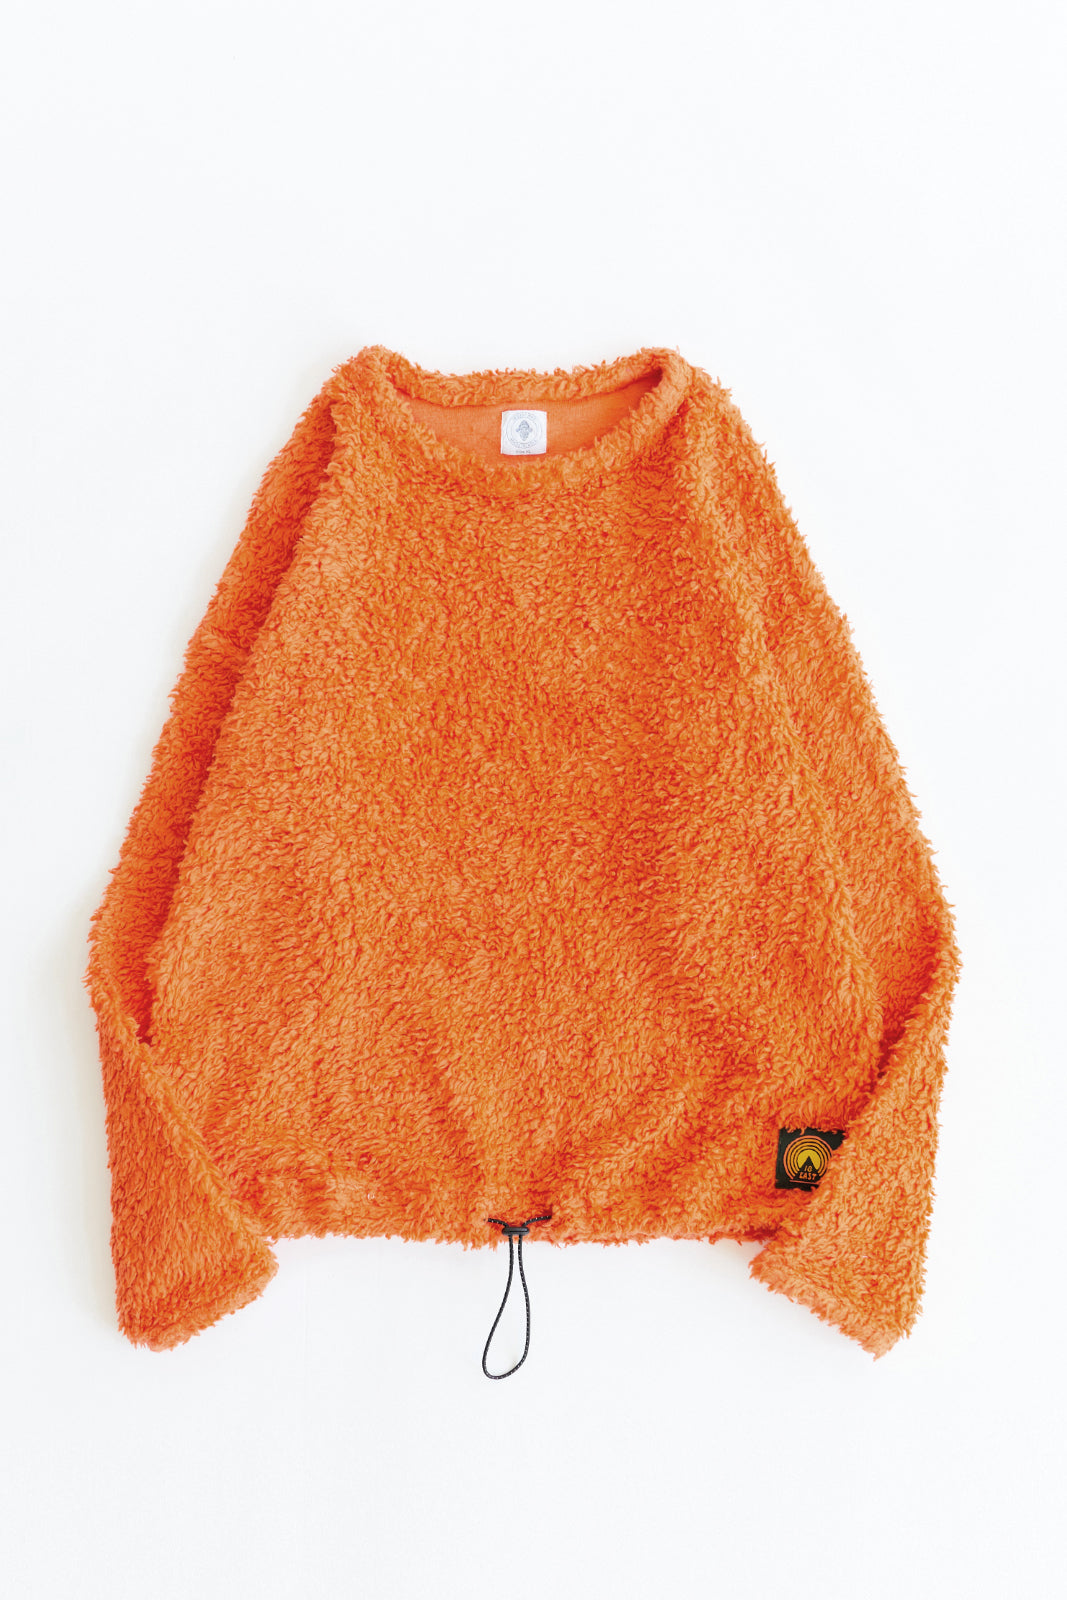 BENJI CREWNECK SWEATSHIRT - ORANGE